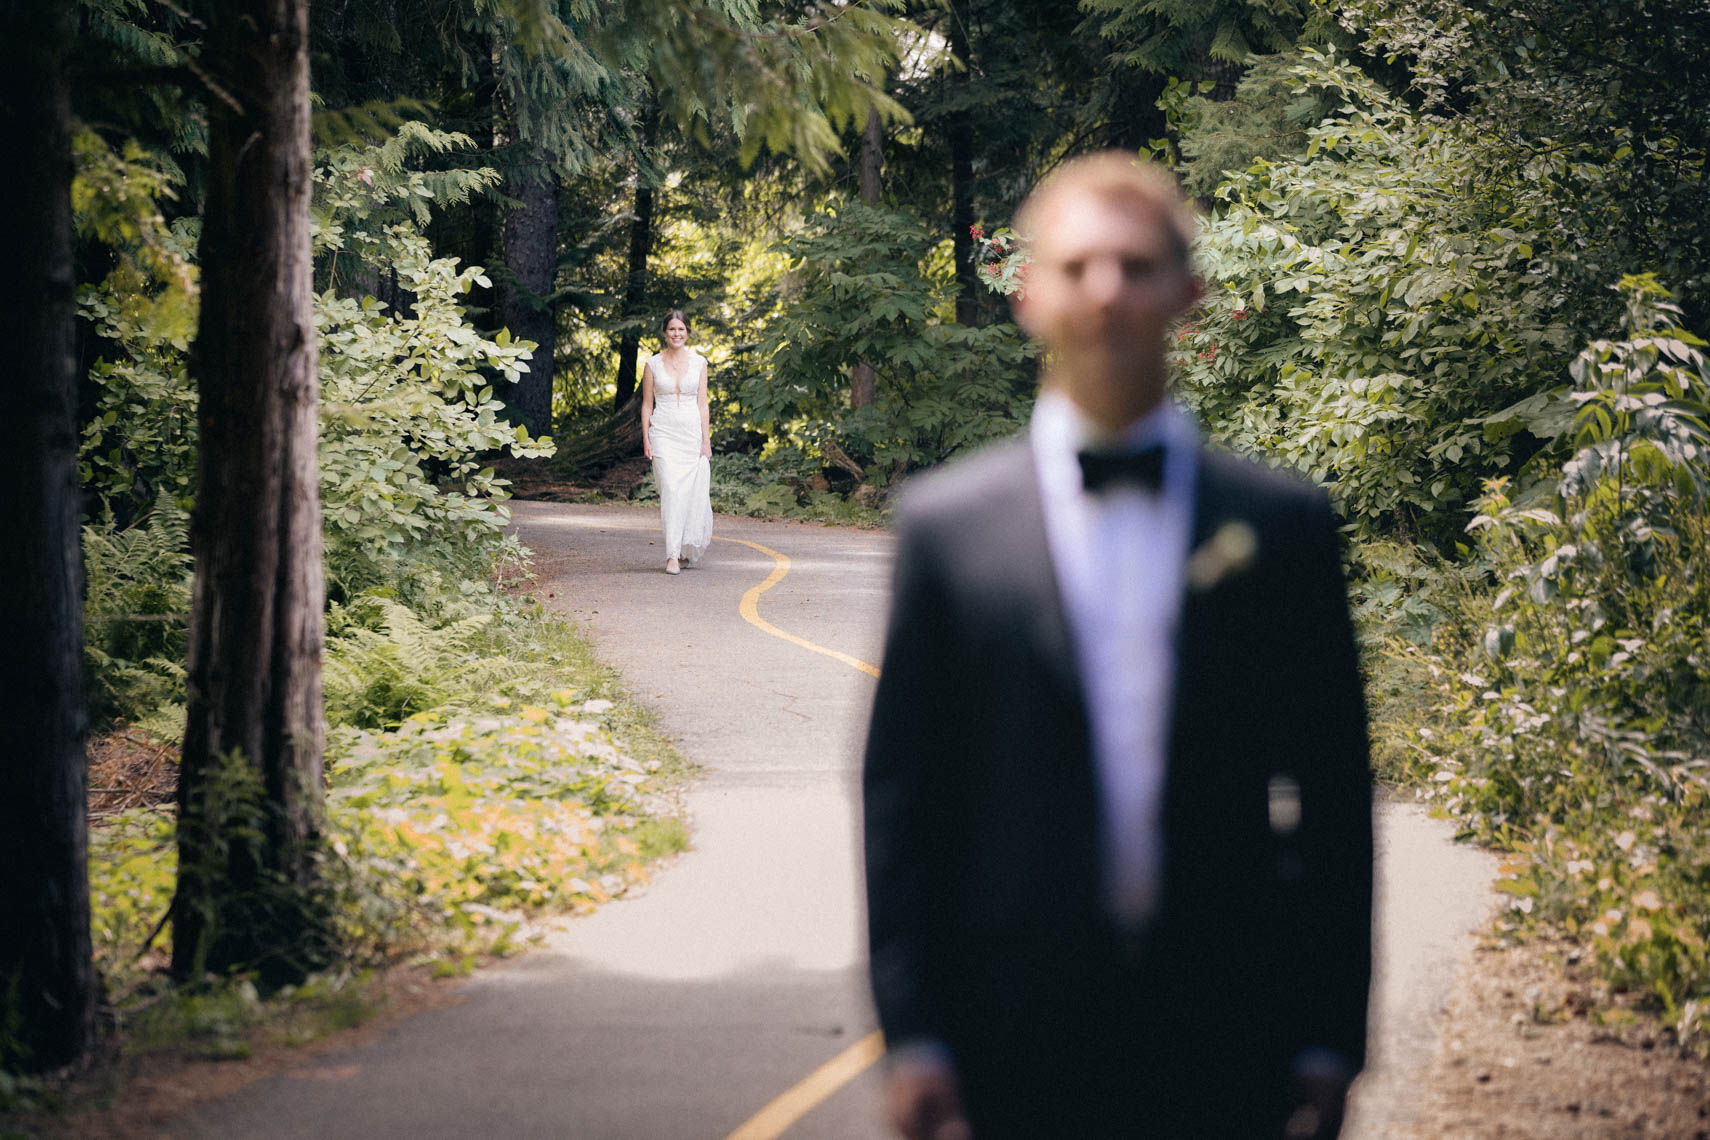 First look between bride and groom on a pathway in the forest of Whistler, BC.